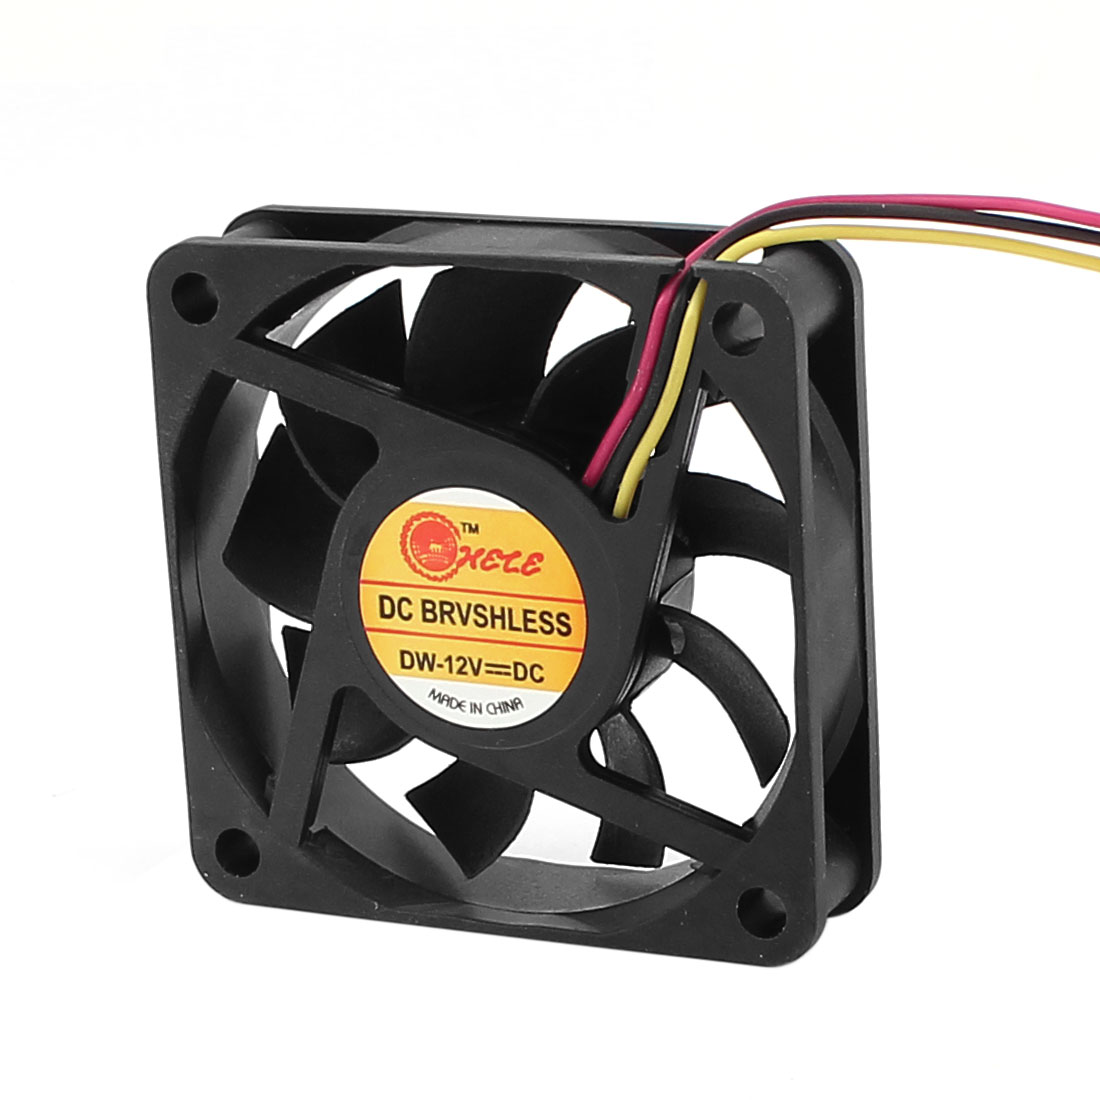 DC 12V 3 Terminal Connector PC Computer Case CPU Cooler Cooling Fan 60mm x 10mm